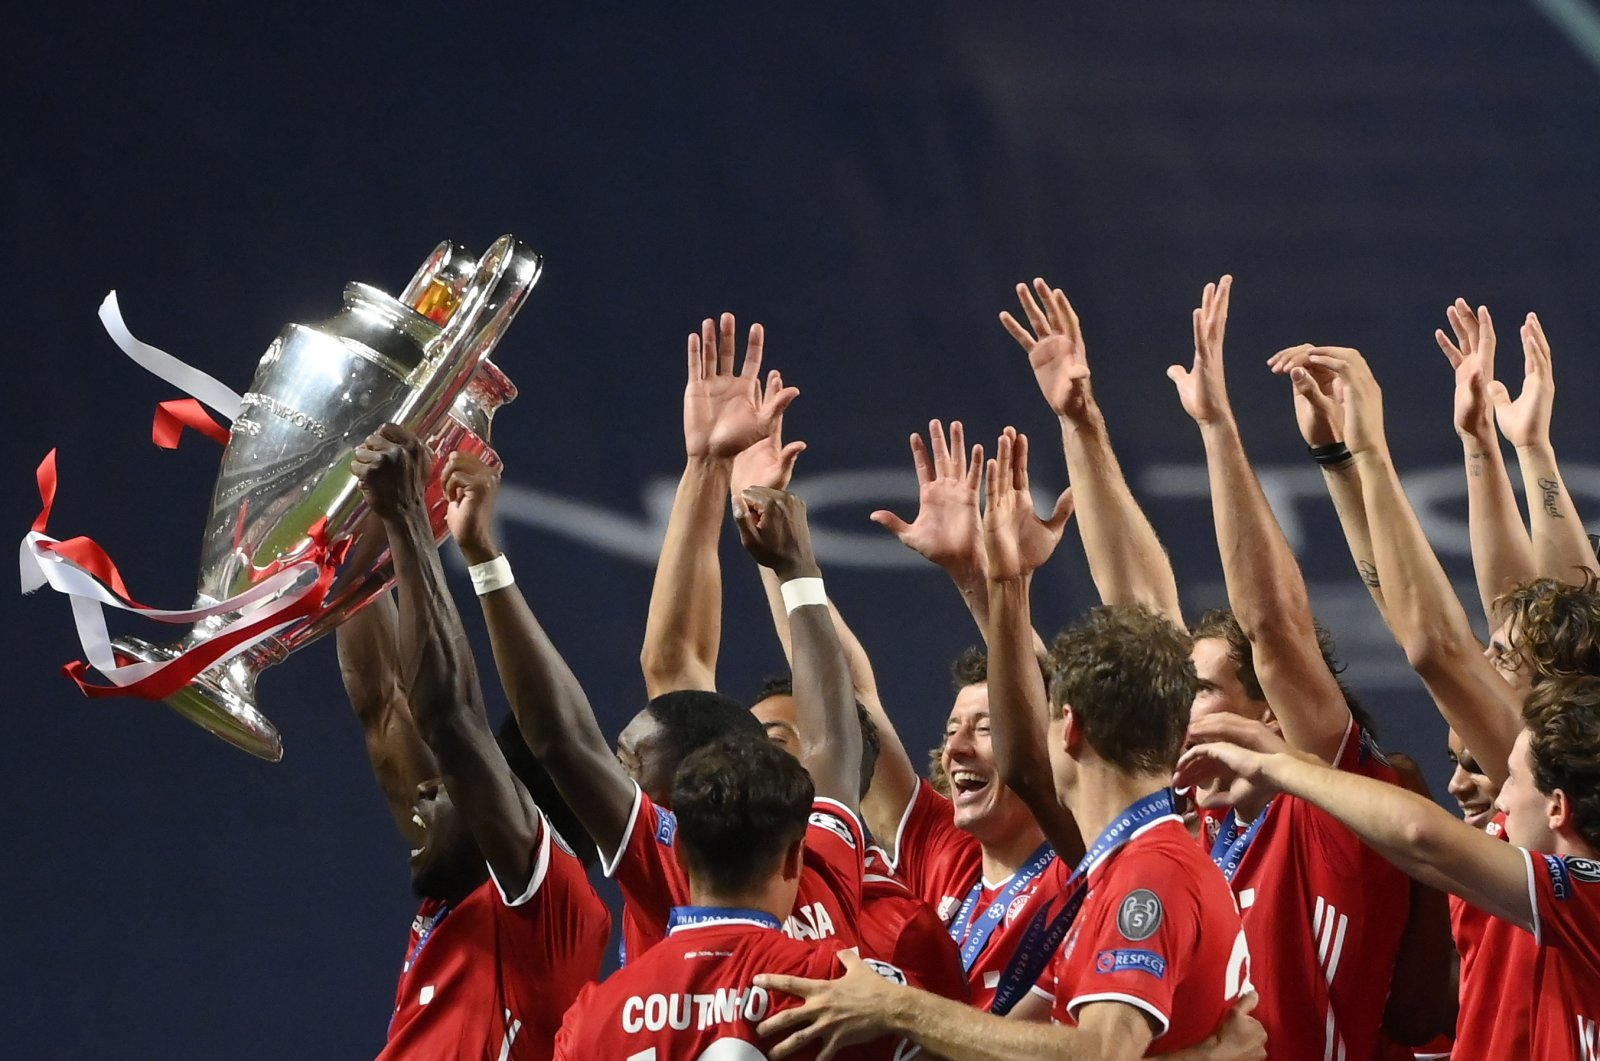 Bayern Munich players players celebrate with the trophy after winning the Champions League in Lisbon, Portugal, Aug. 23, 2020. (AP Photo)